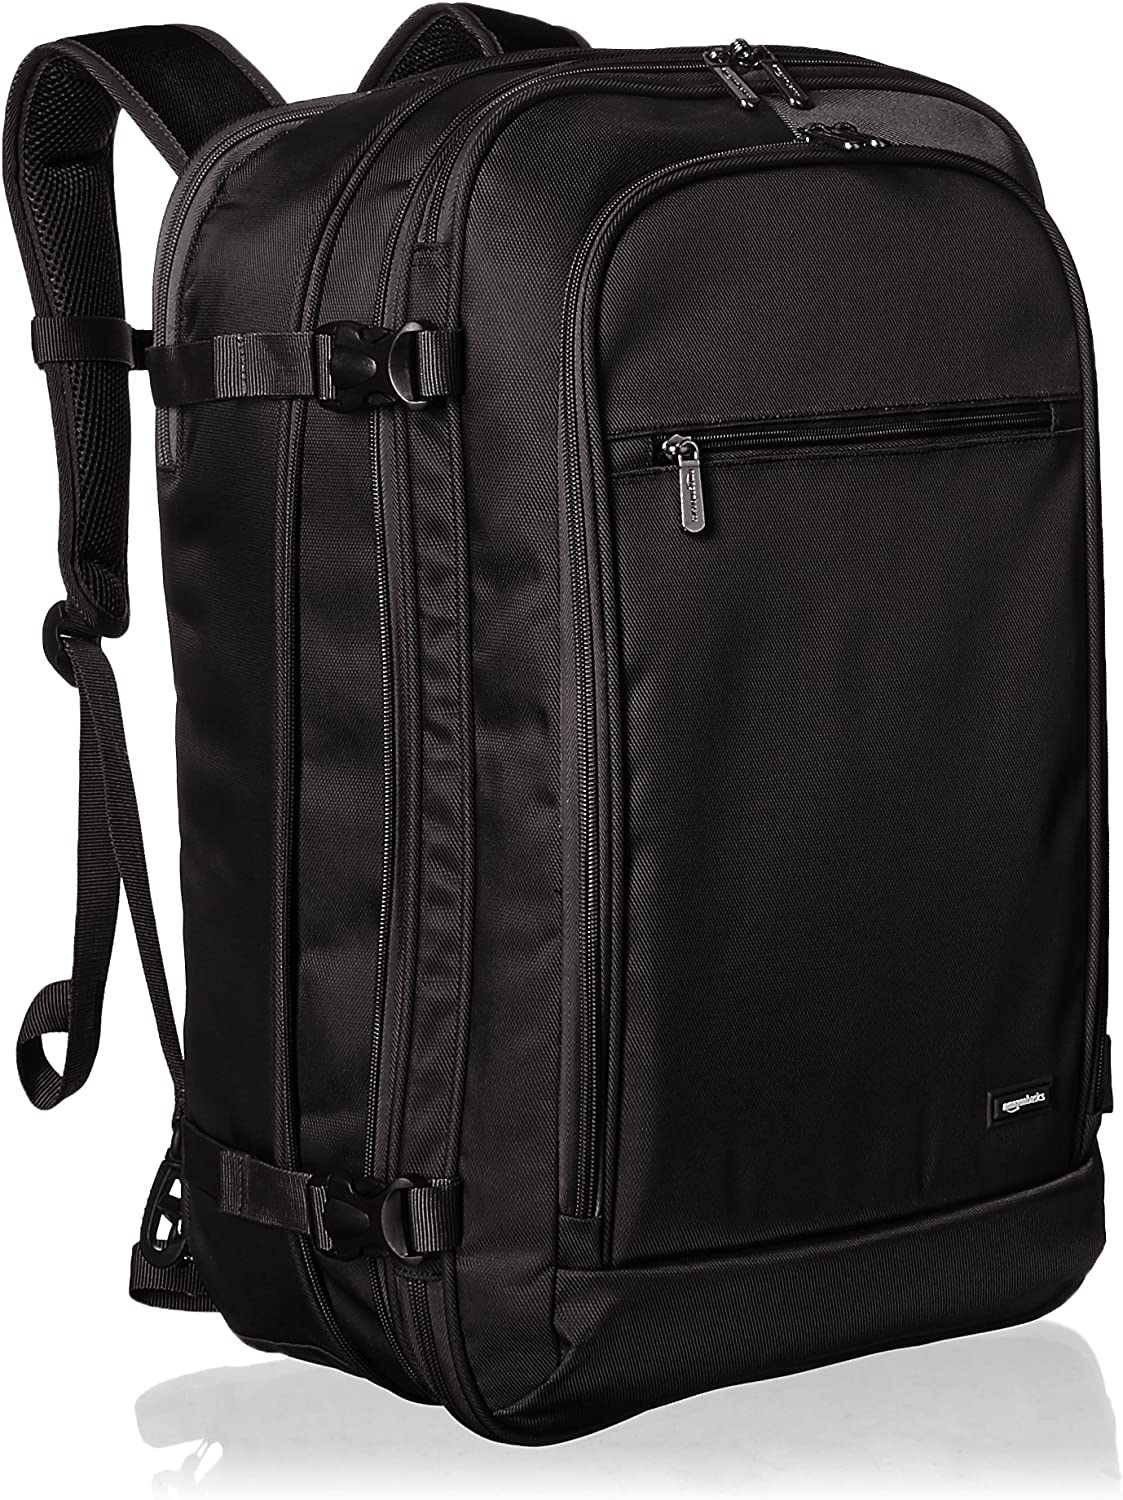 | Basics Carry-On Travel Backpack - Black | Casual Daypacks